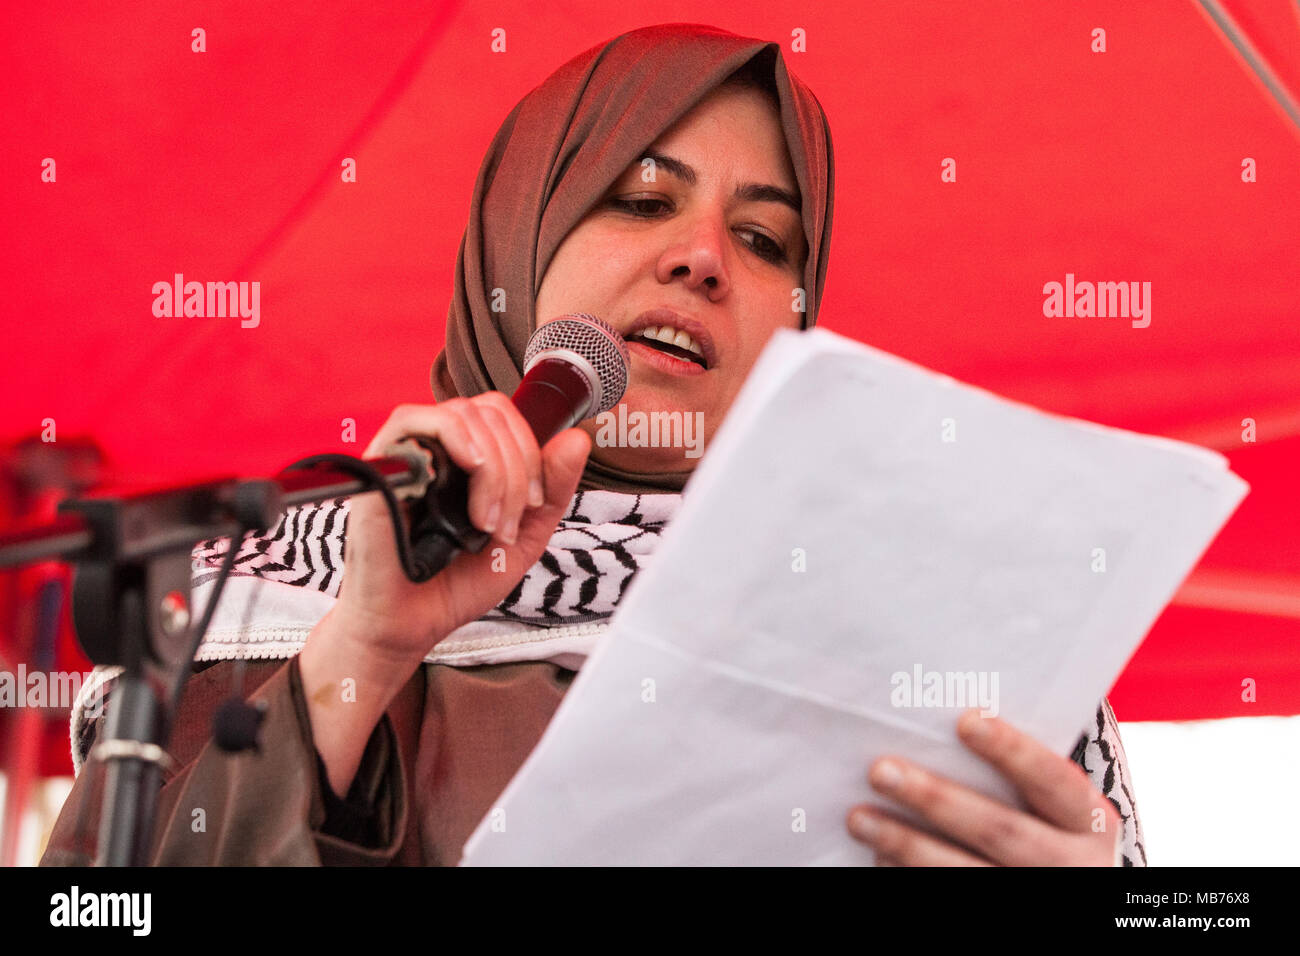 London, UK. 7th April, 2018. Raghad Al Tikriti of Muslim Association of Britain addresses hundreds of people at a rally outside Downing Street in solidarity with Palestinians attending the Great March of Return in Gaza and in protest against the killing there by Israeli snipers using live ammunition of at least 27 unarmed Palestinians and the injury of hundreds more. Credit: Mark Kerrison/Alamy Live News - Stock Image